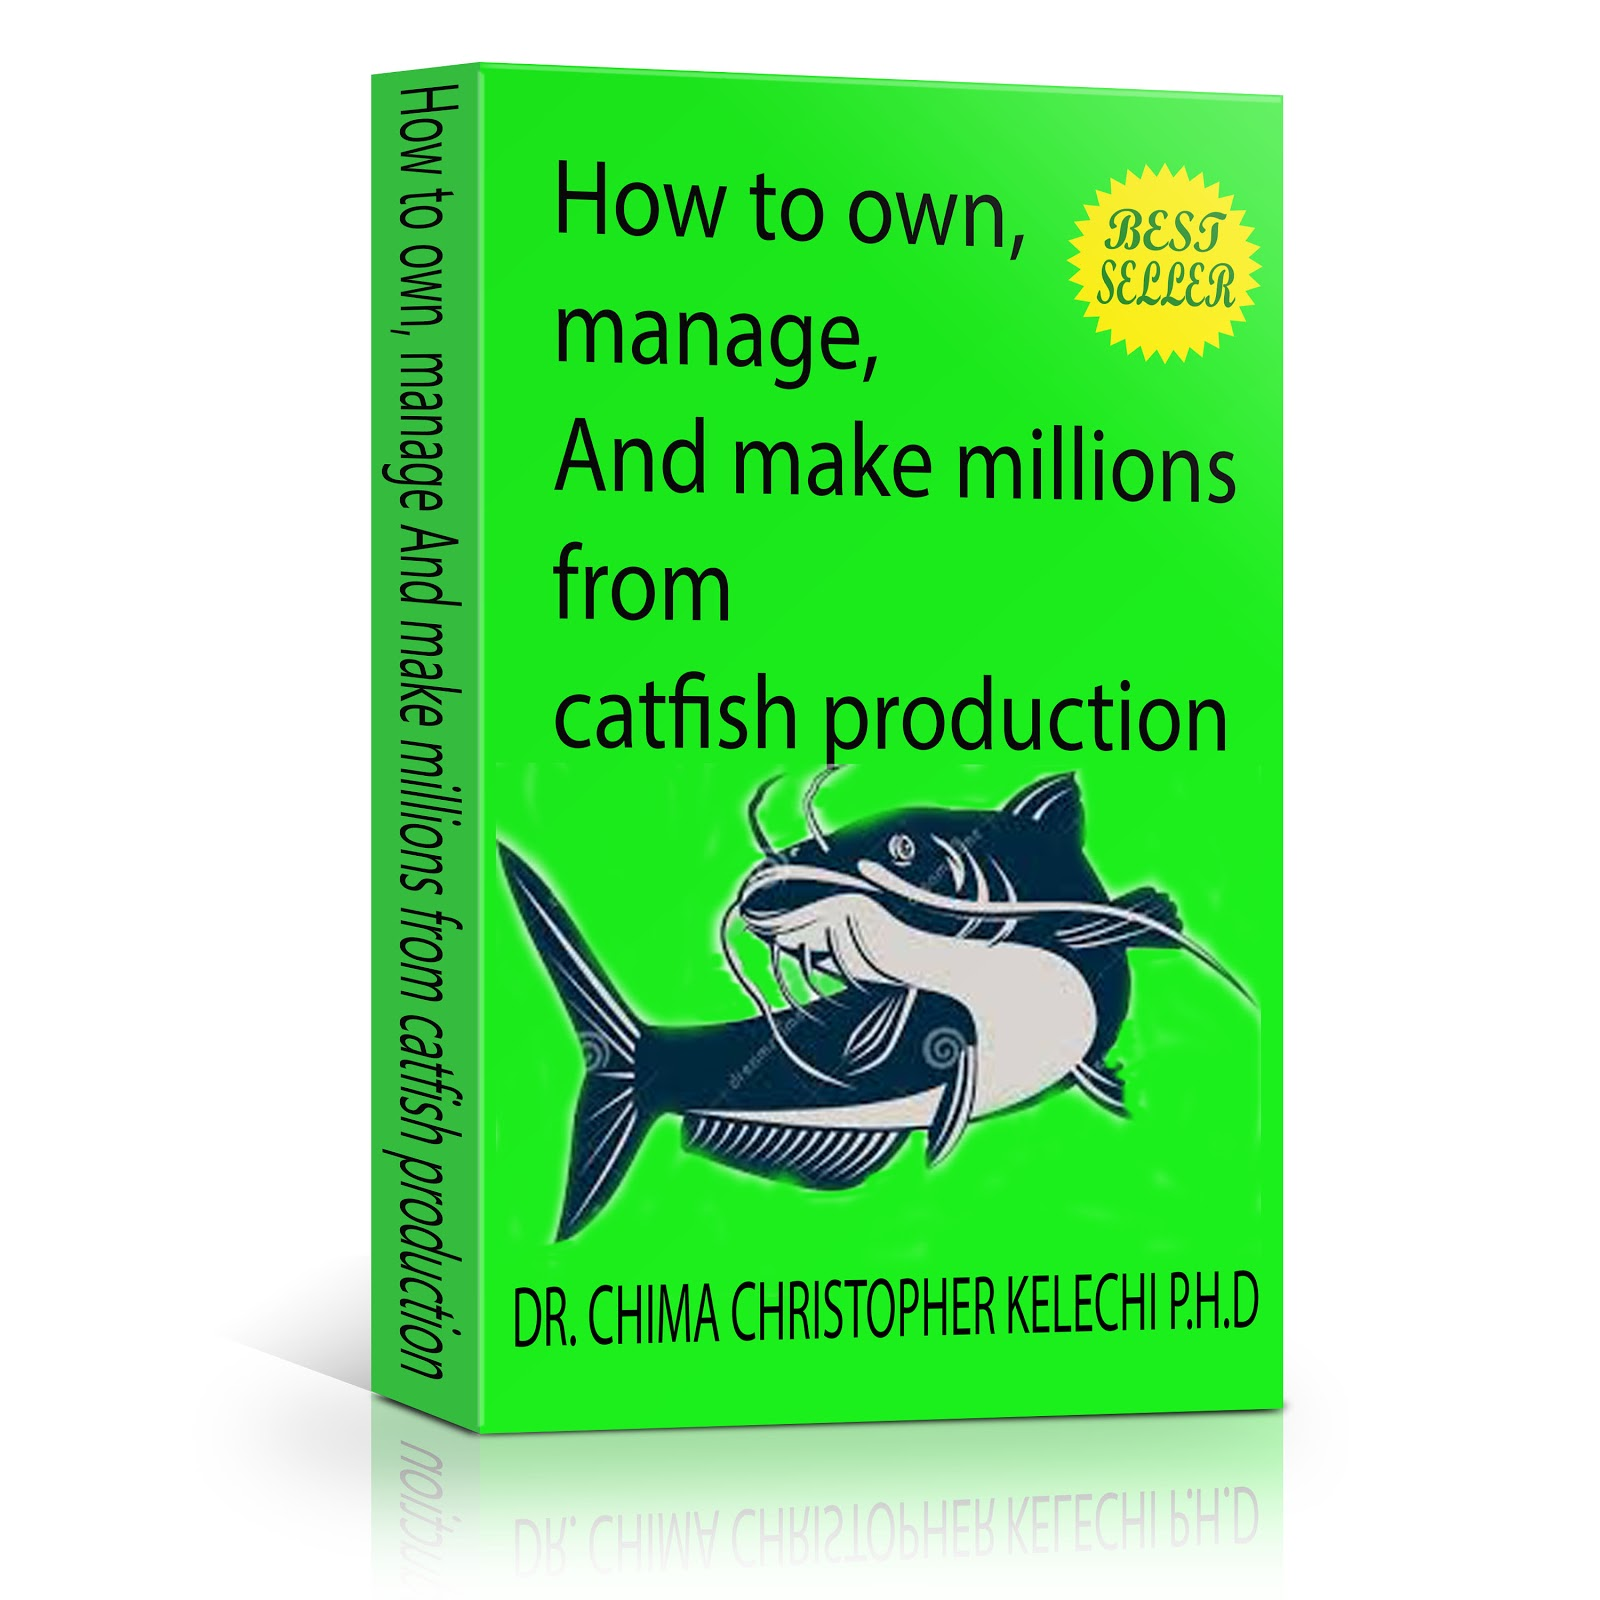 How to own, manage, and make millions from catfish farming business ...